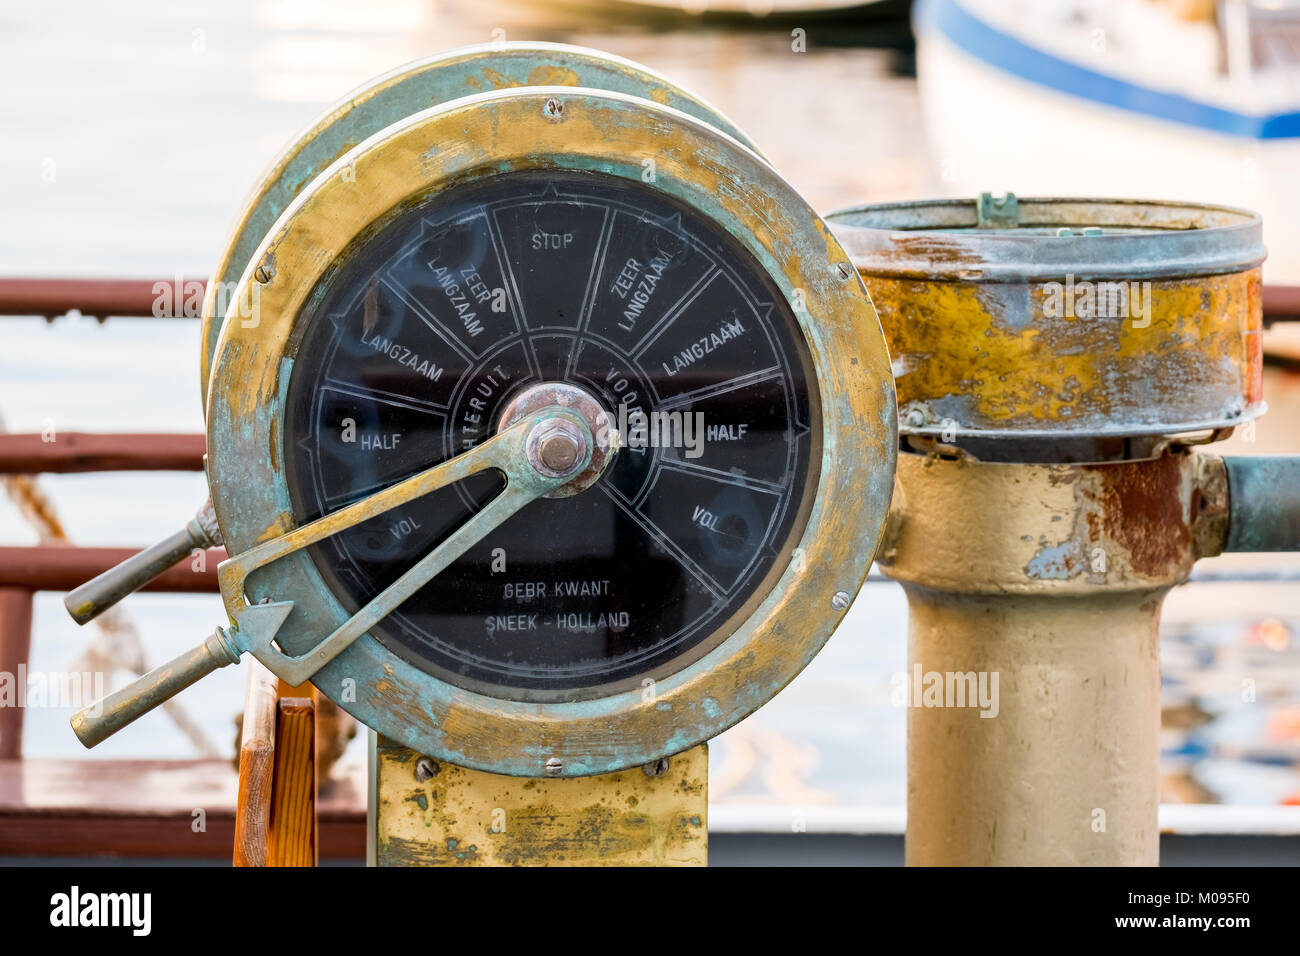 Old ship fitting, ship throttle control brass, Chania, Europe, Crete, Greece, Chania, Europe, Crete, Greece, GR, Stock Photo